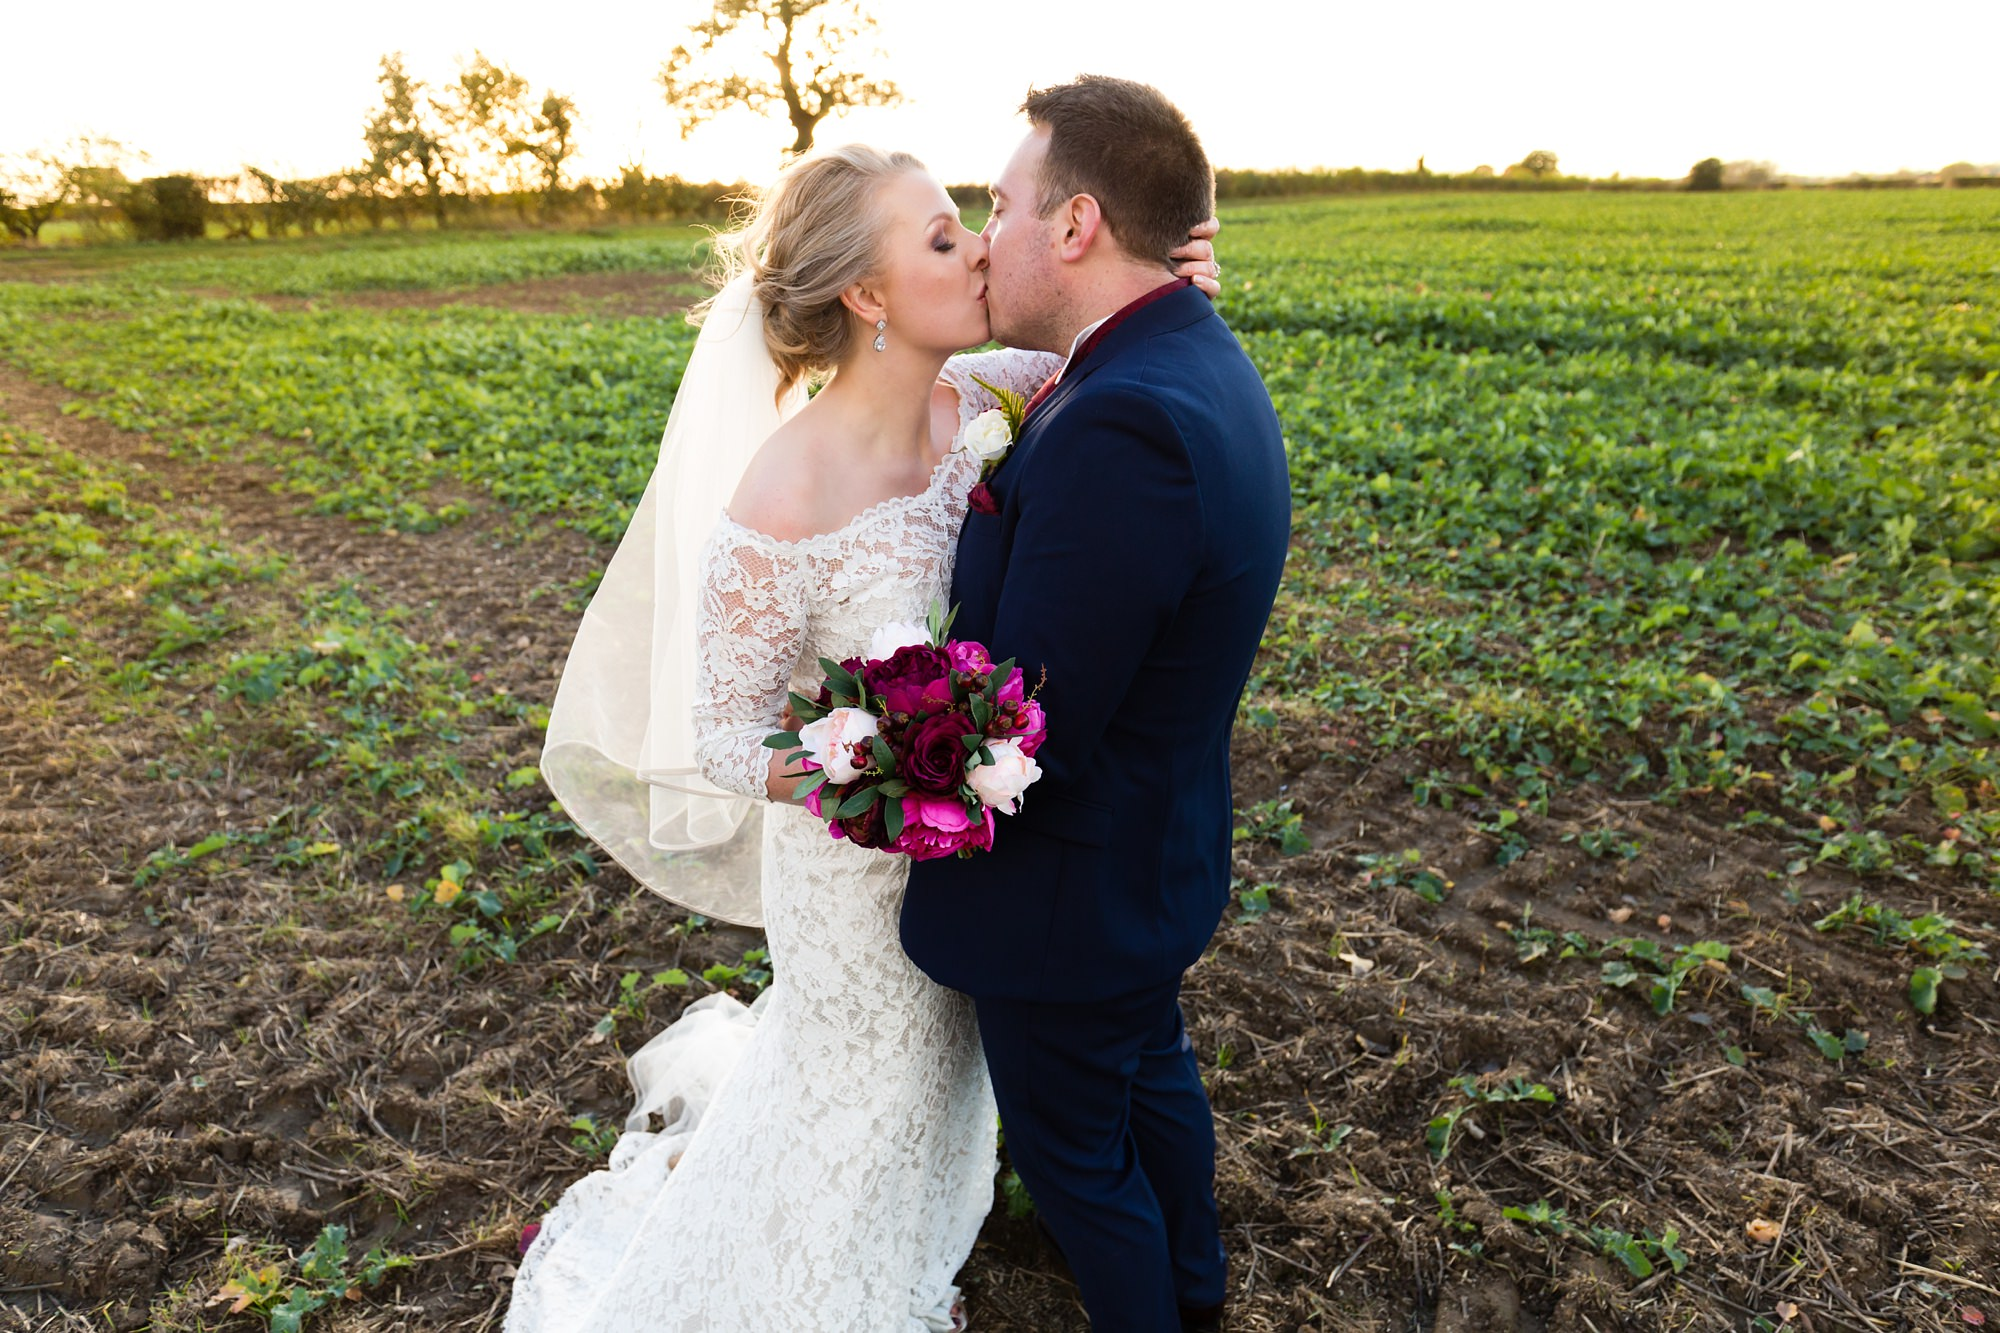 Bride & groom kiss in the fields at The Normans wedding venue in York